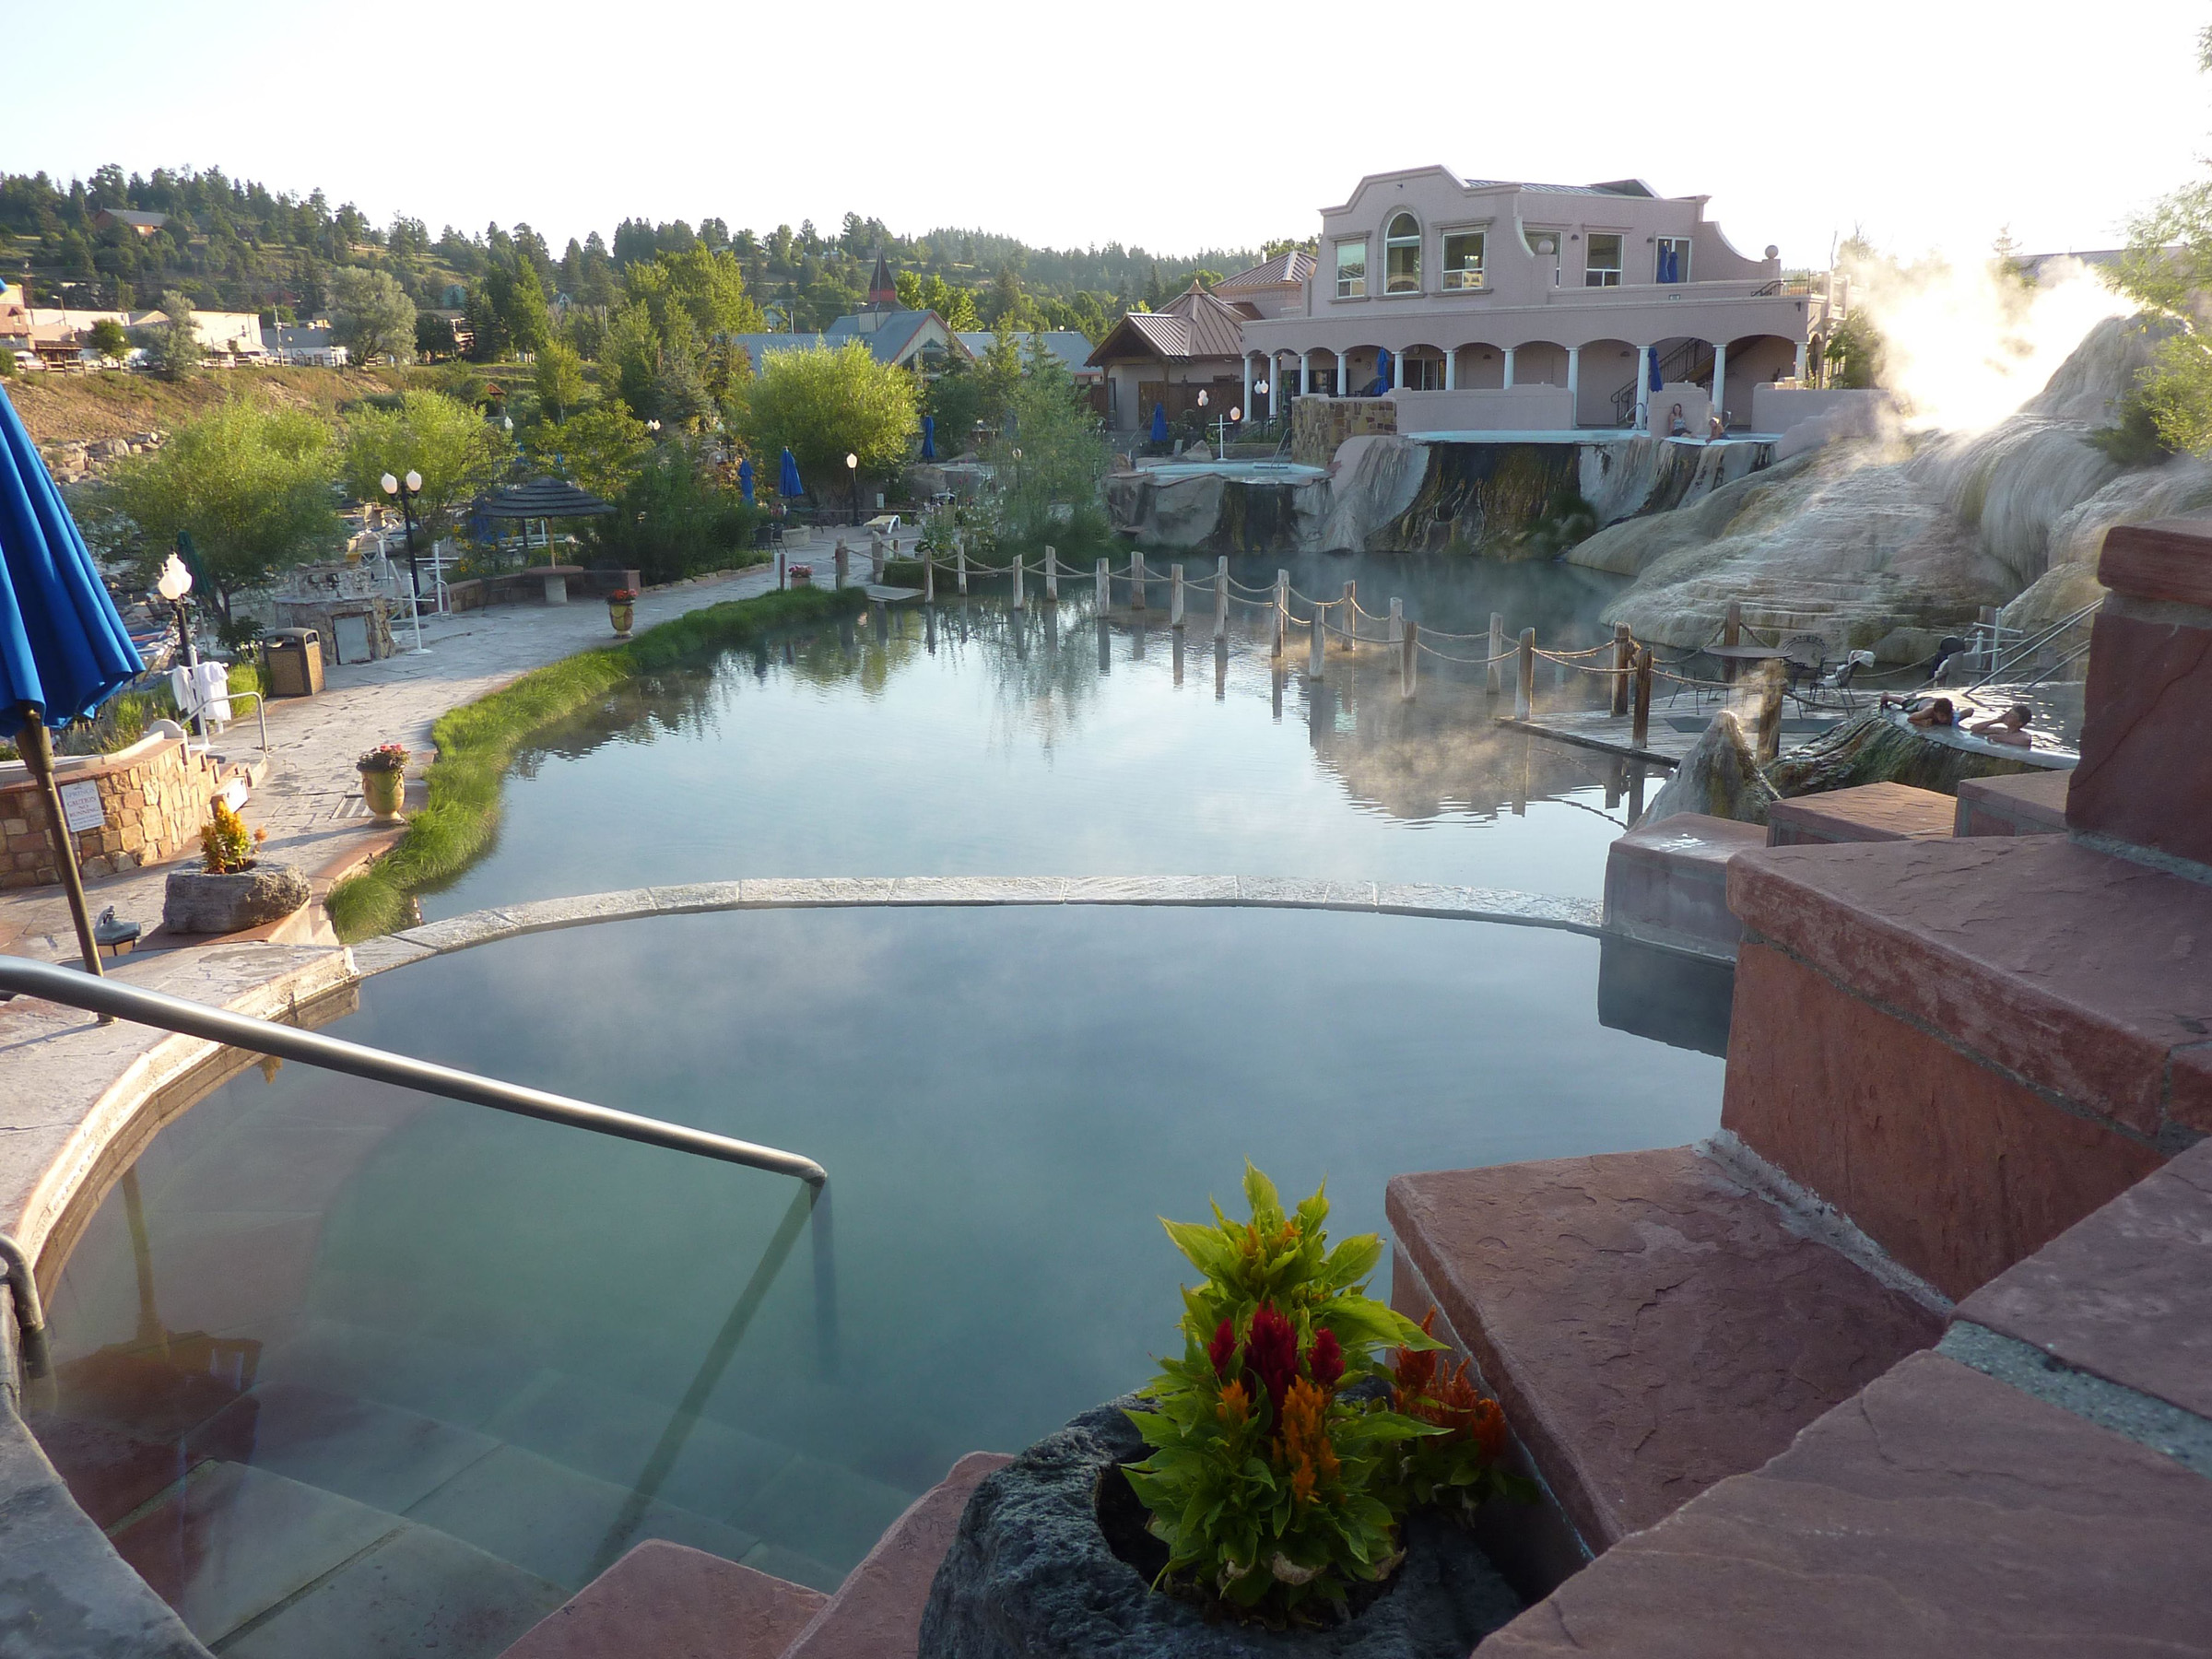 pagosa springs personals Get directions, maps, and traffic for pagosa springs, co check flight prices and hotel availability for your visit.